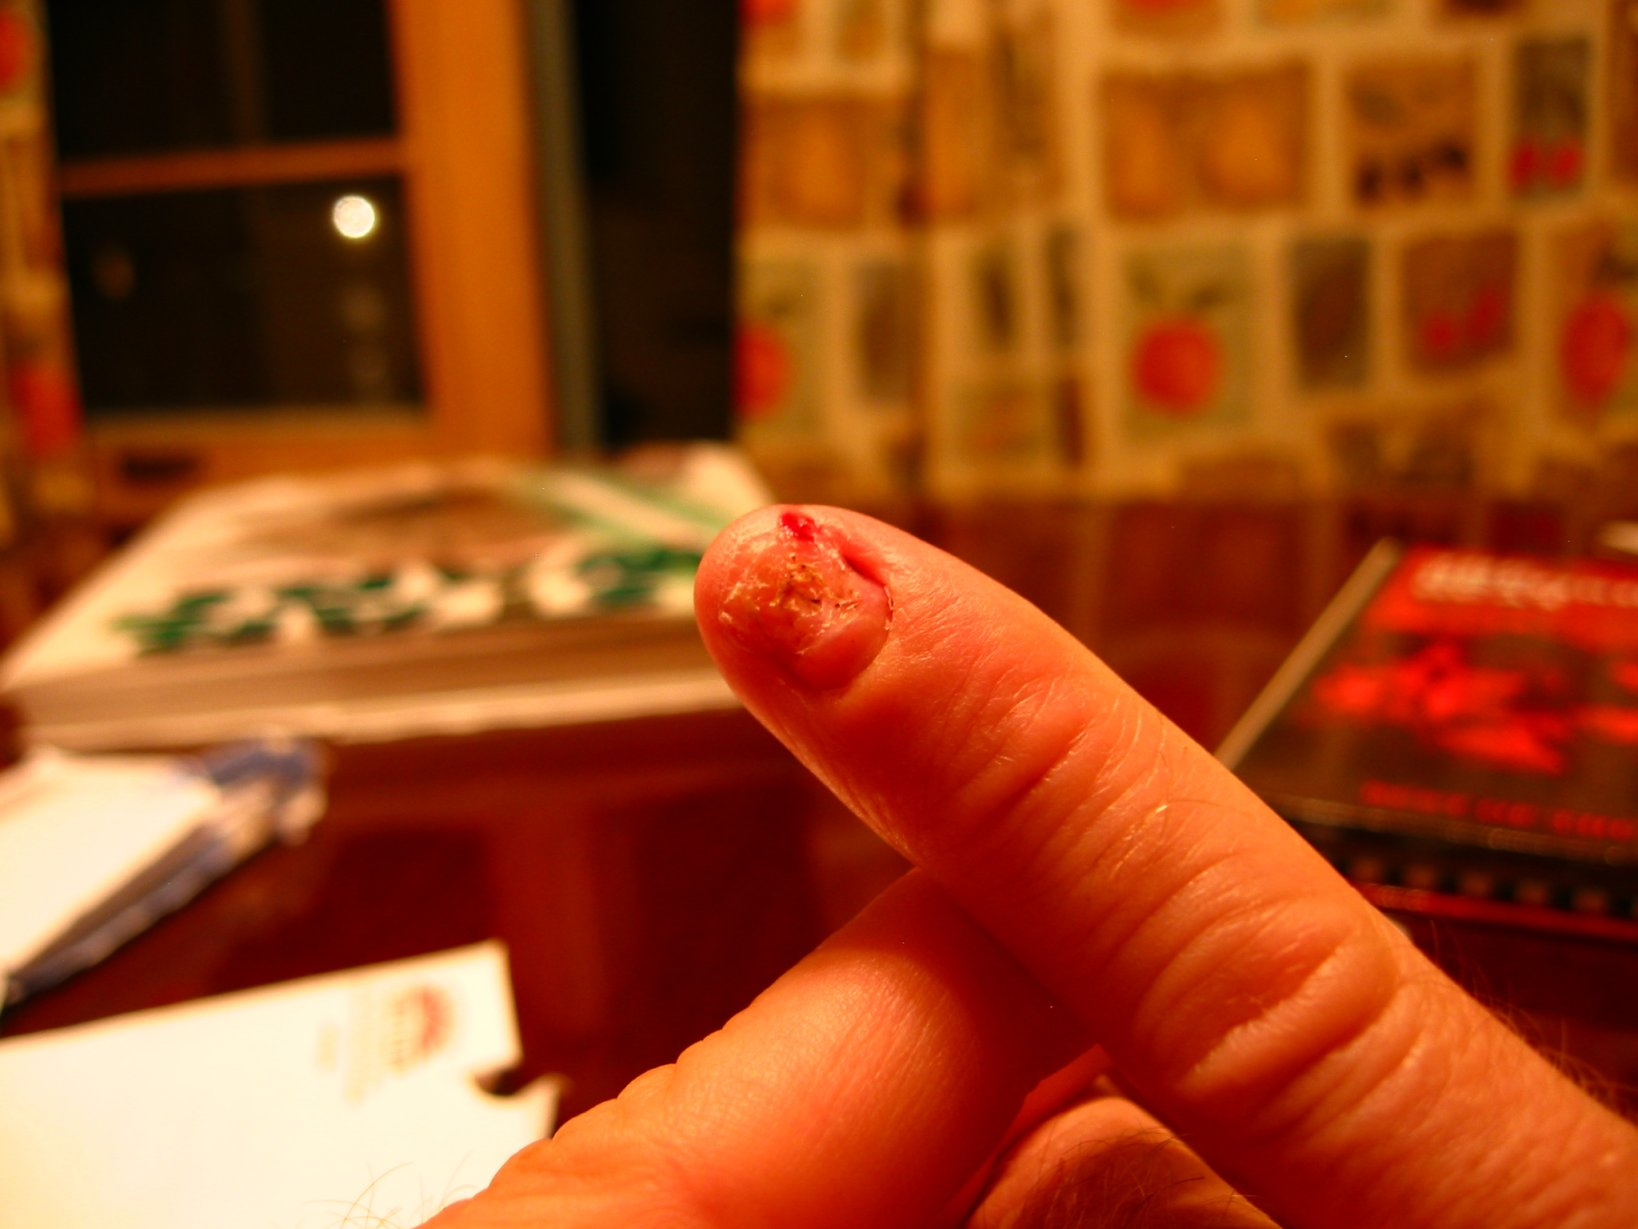 smashed finger just after pulling nail off - soul-amp.com